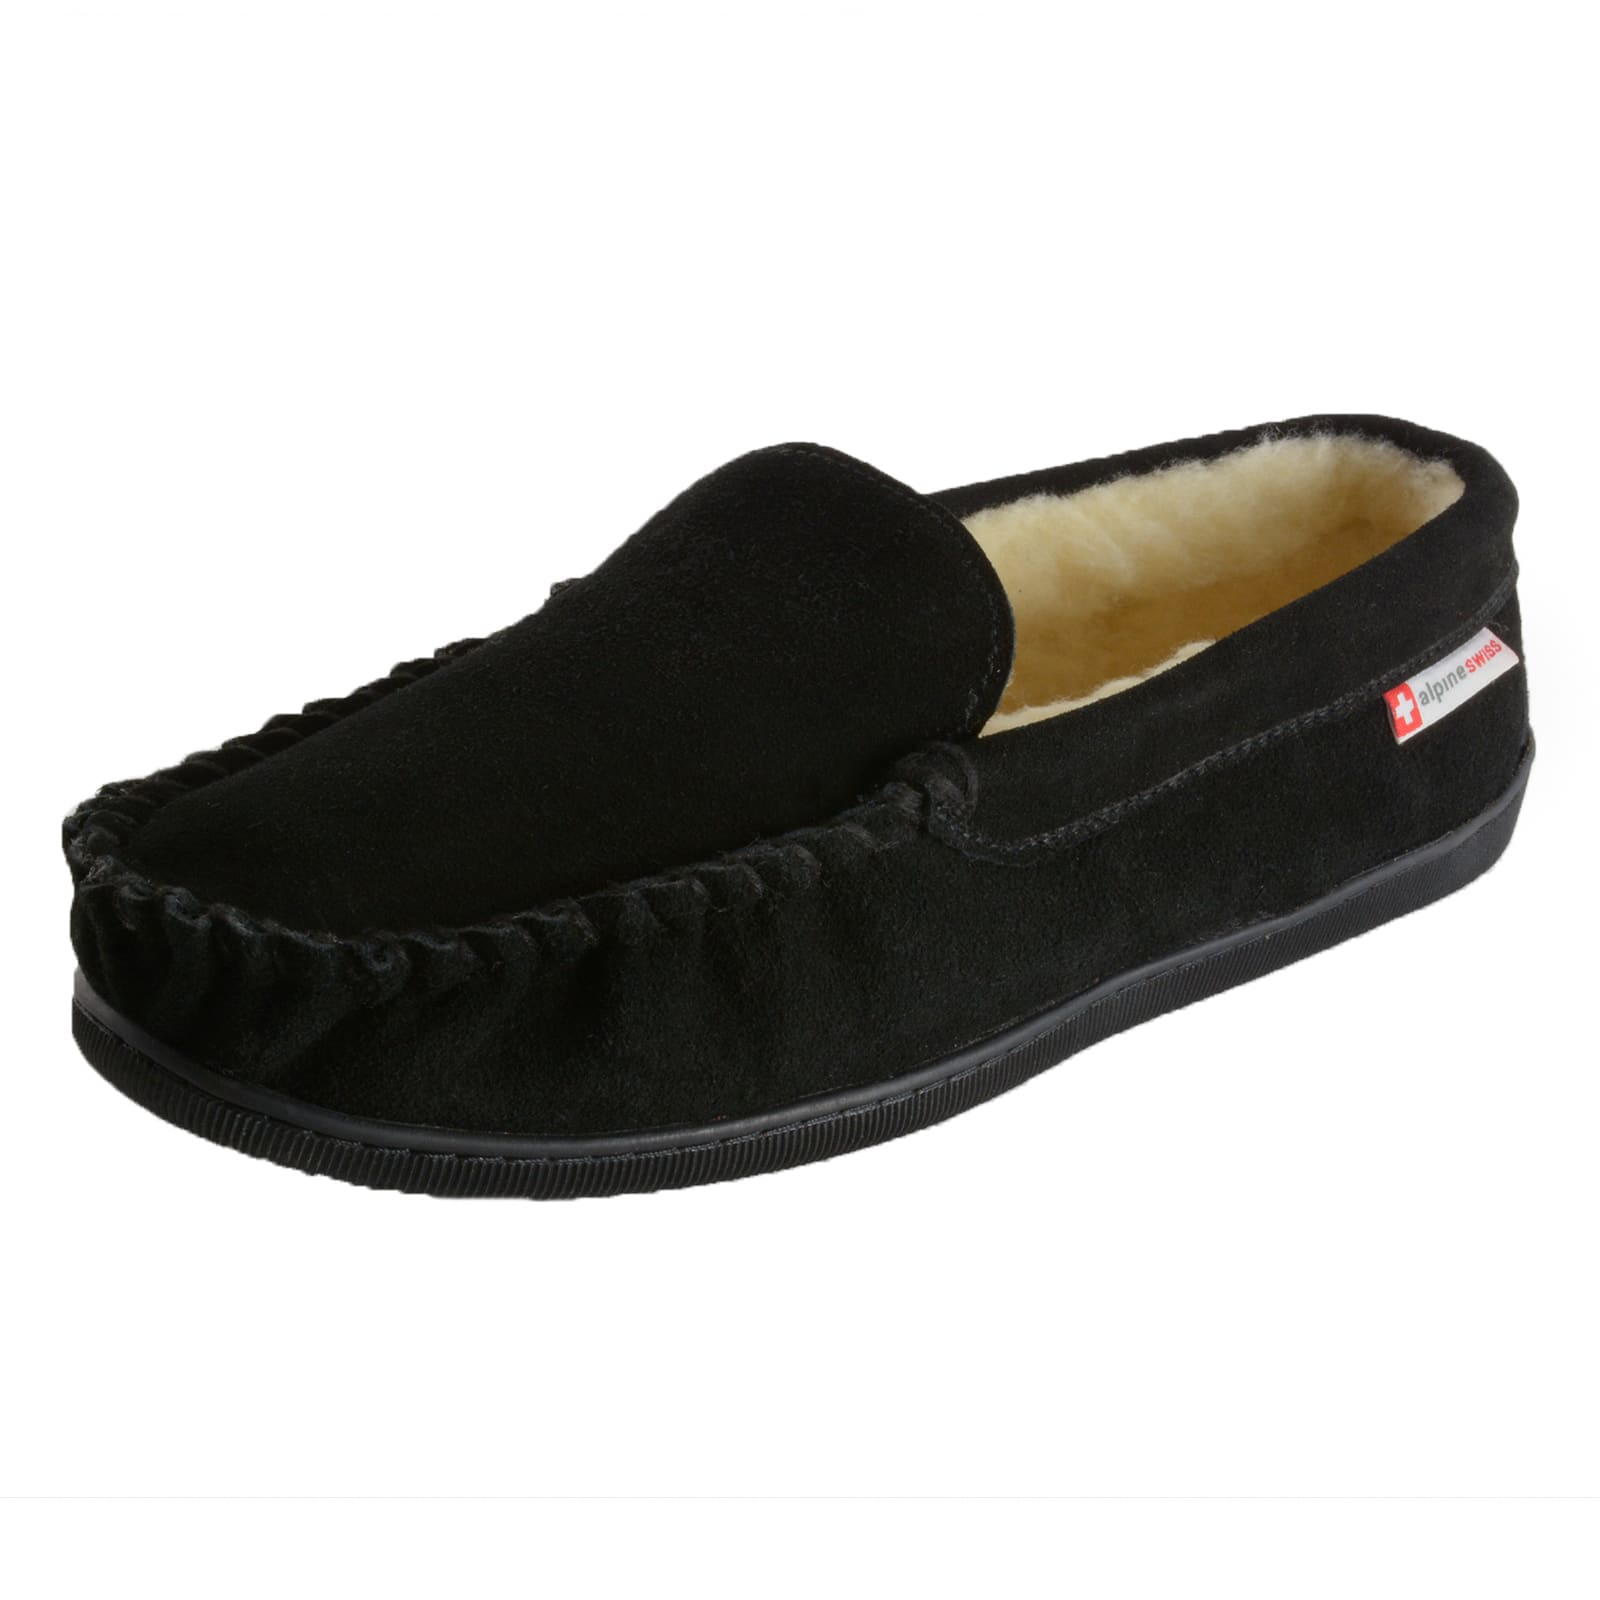 [61% OFF] Alpine Swiss Men's Moccasin (Save $23.01) + Free Shipping $14.99